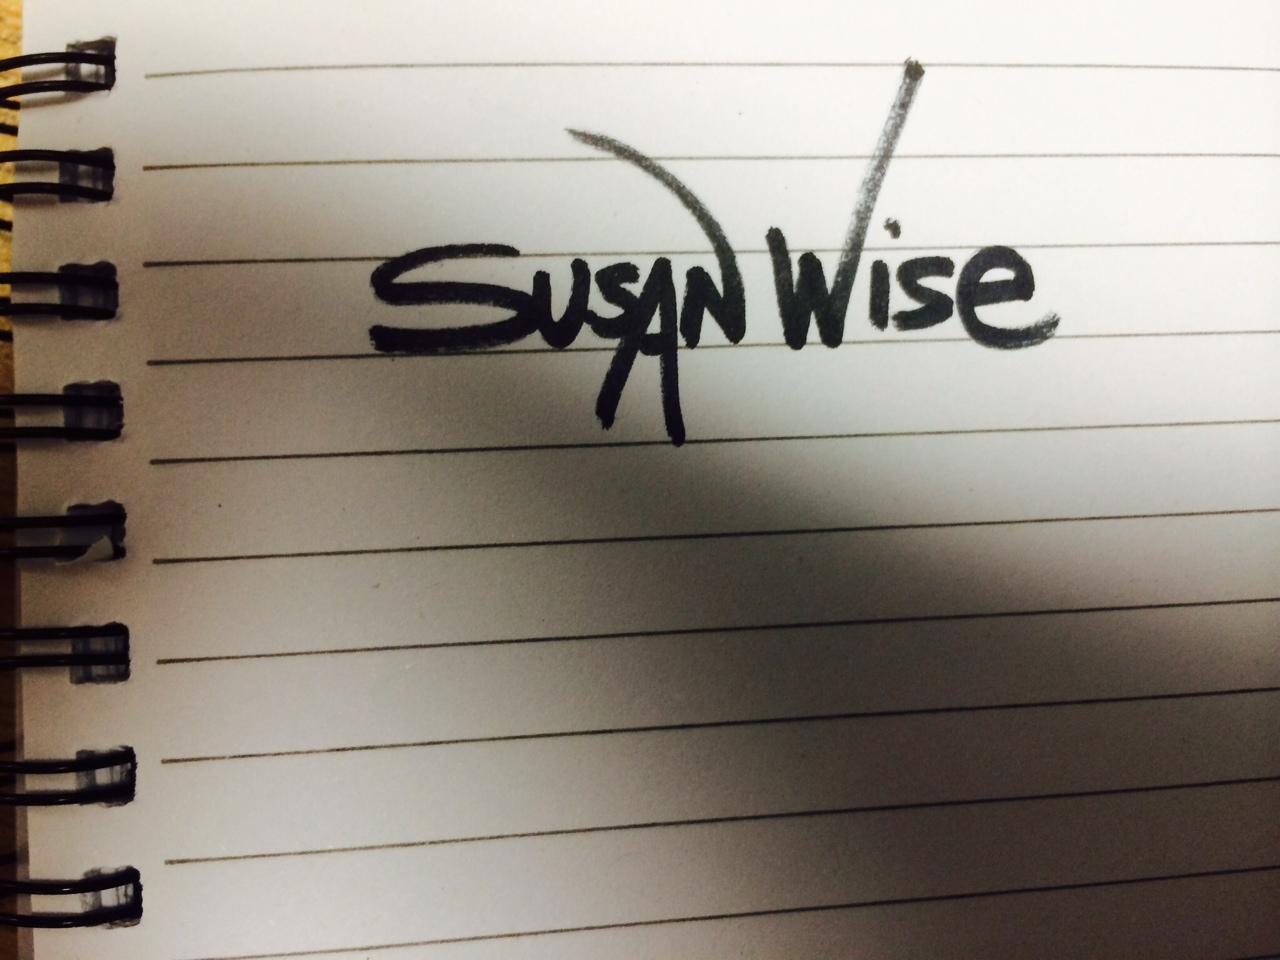 Susan Wise Signature